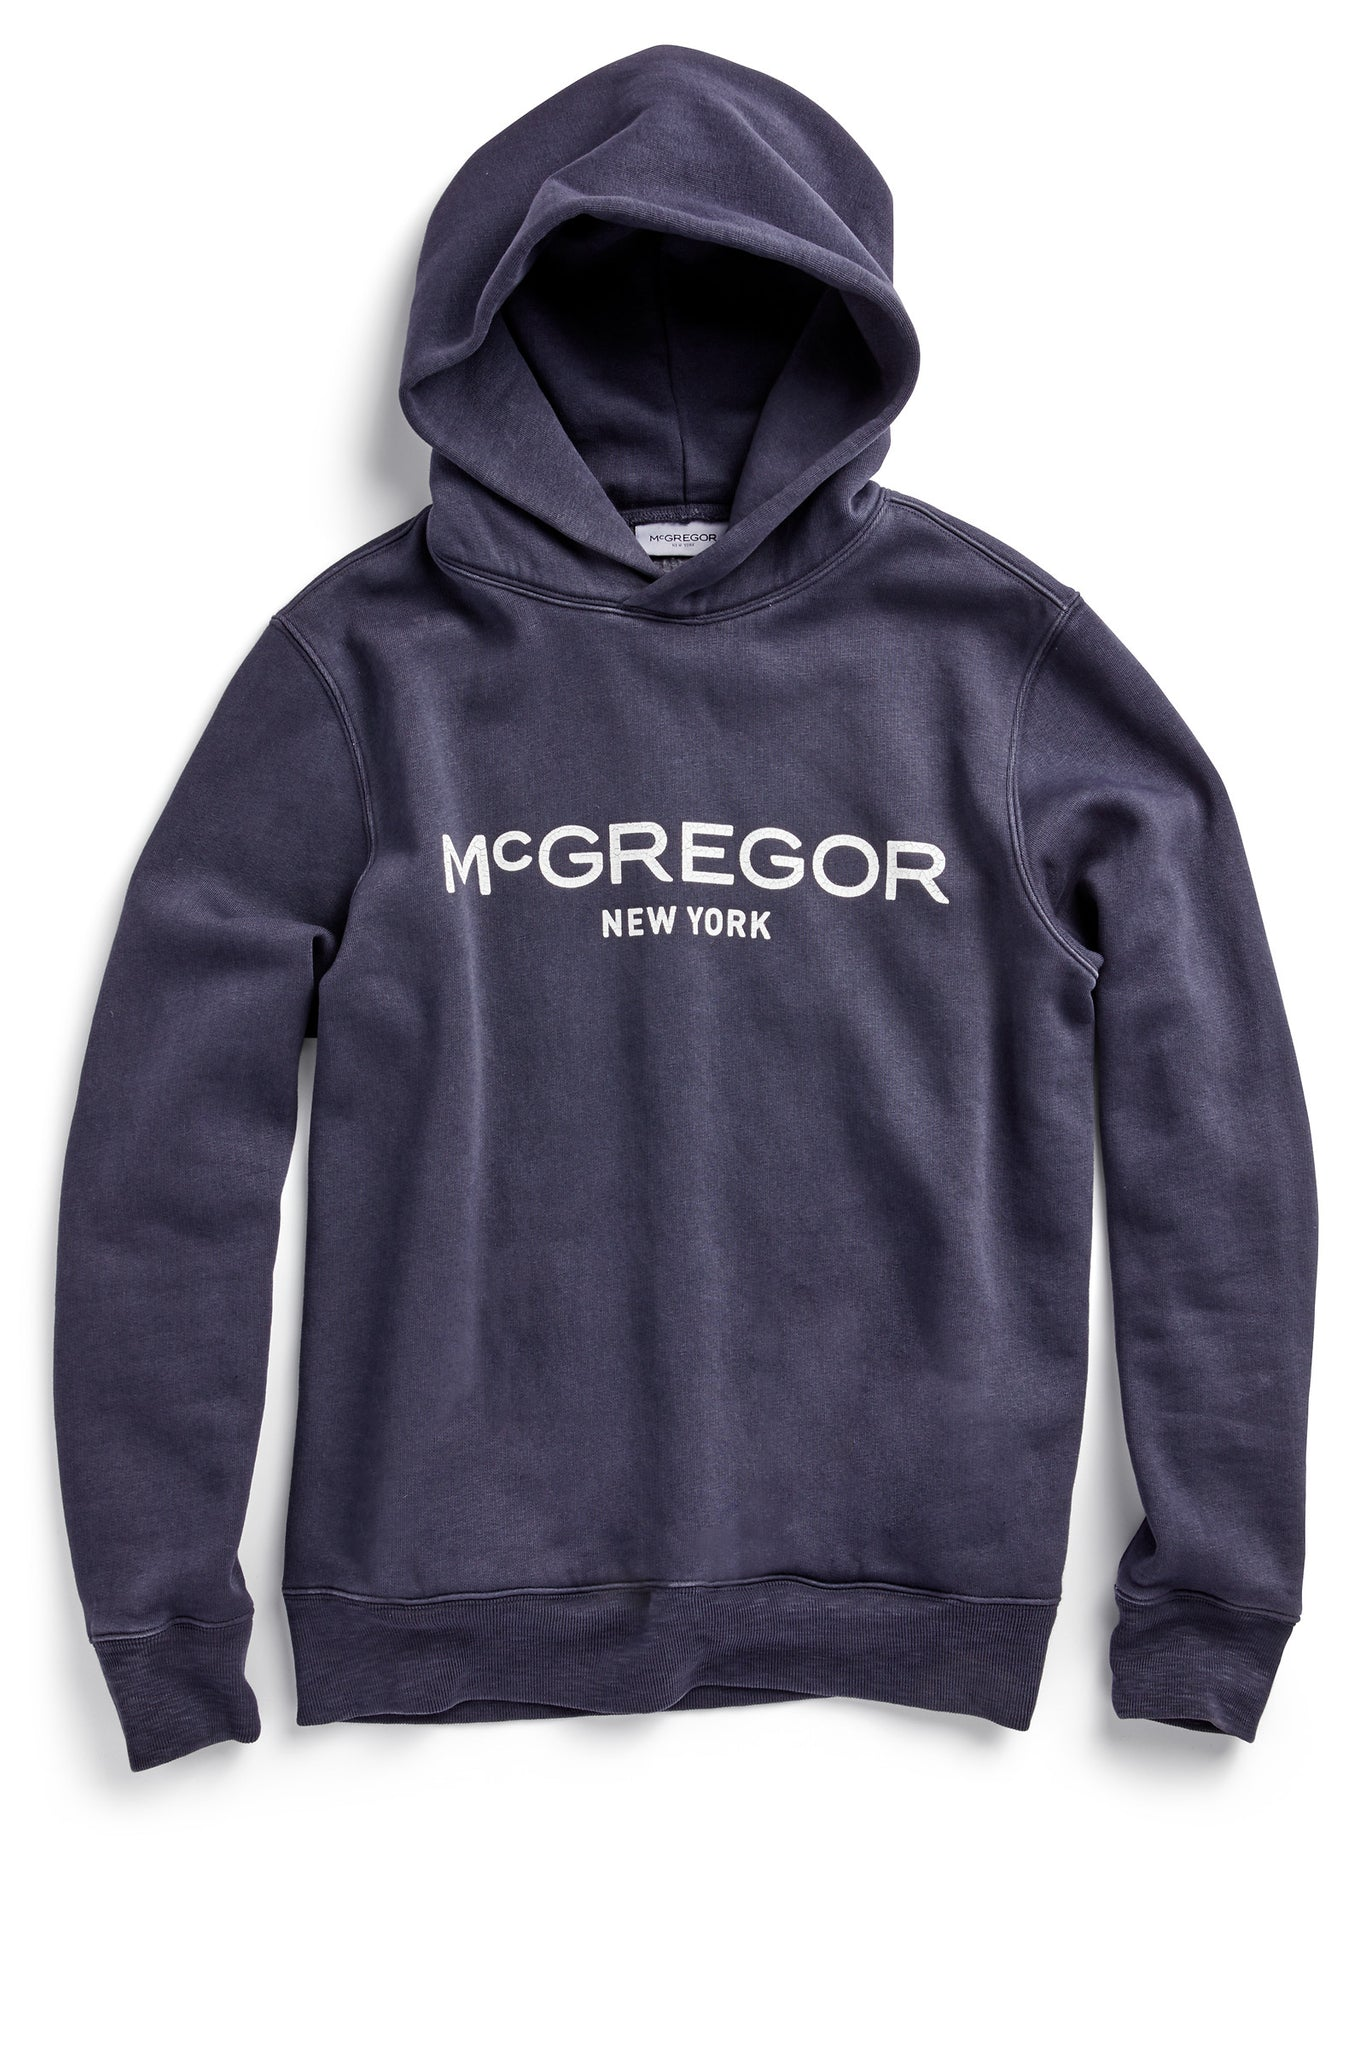 Hoodie with McGregor Artwork